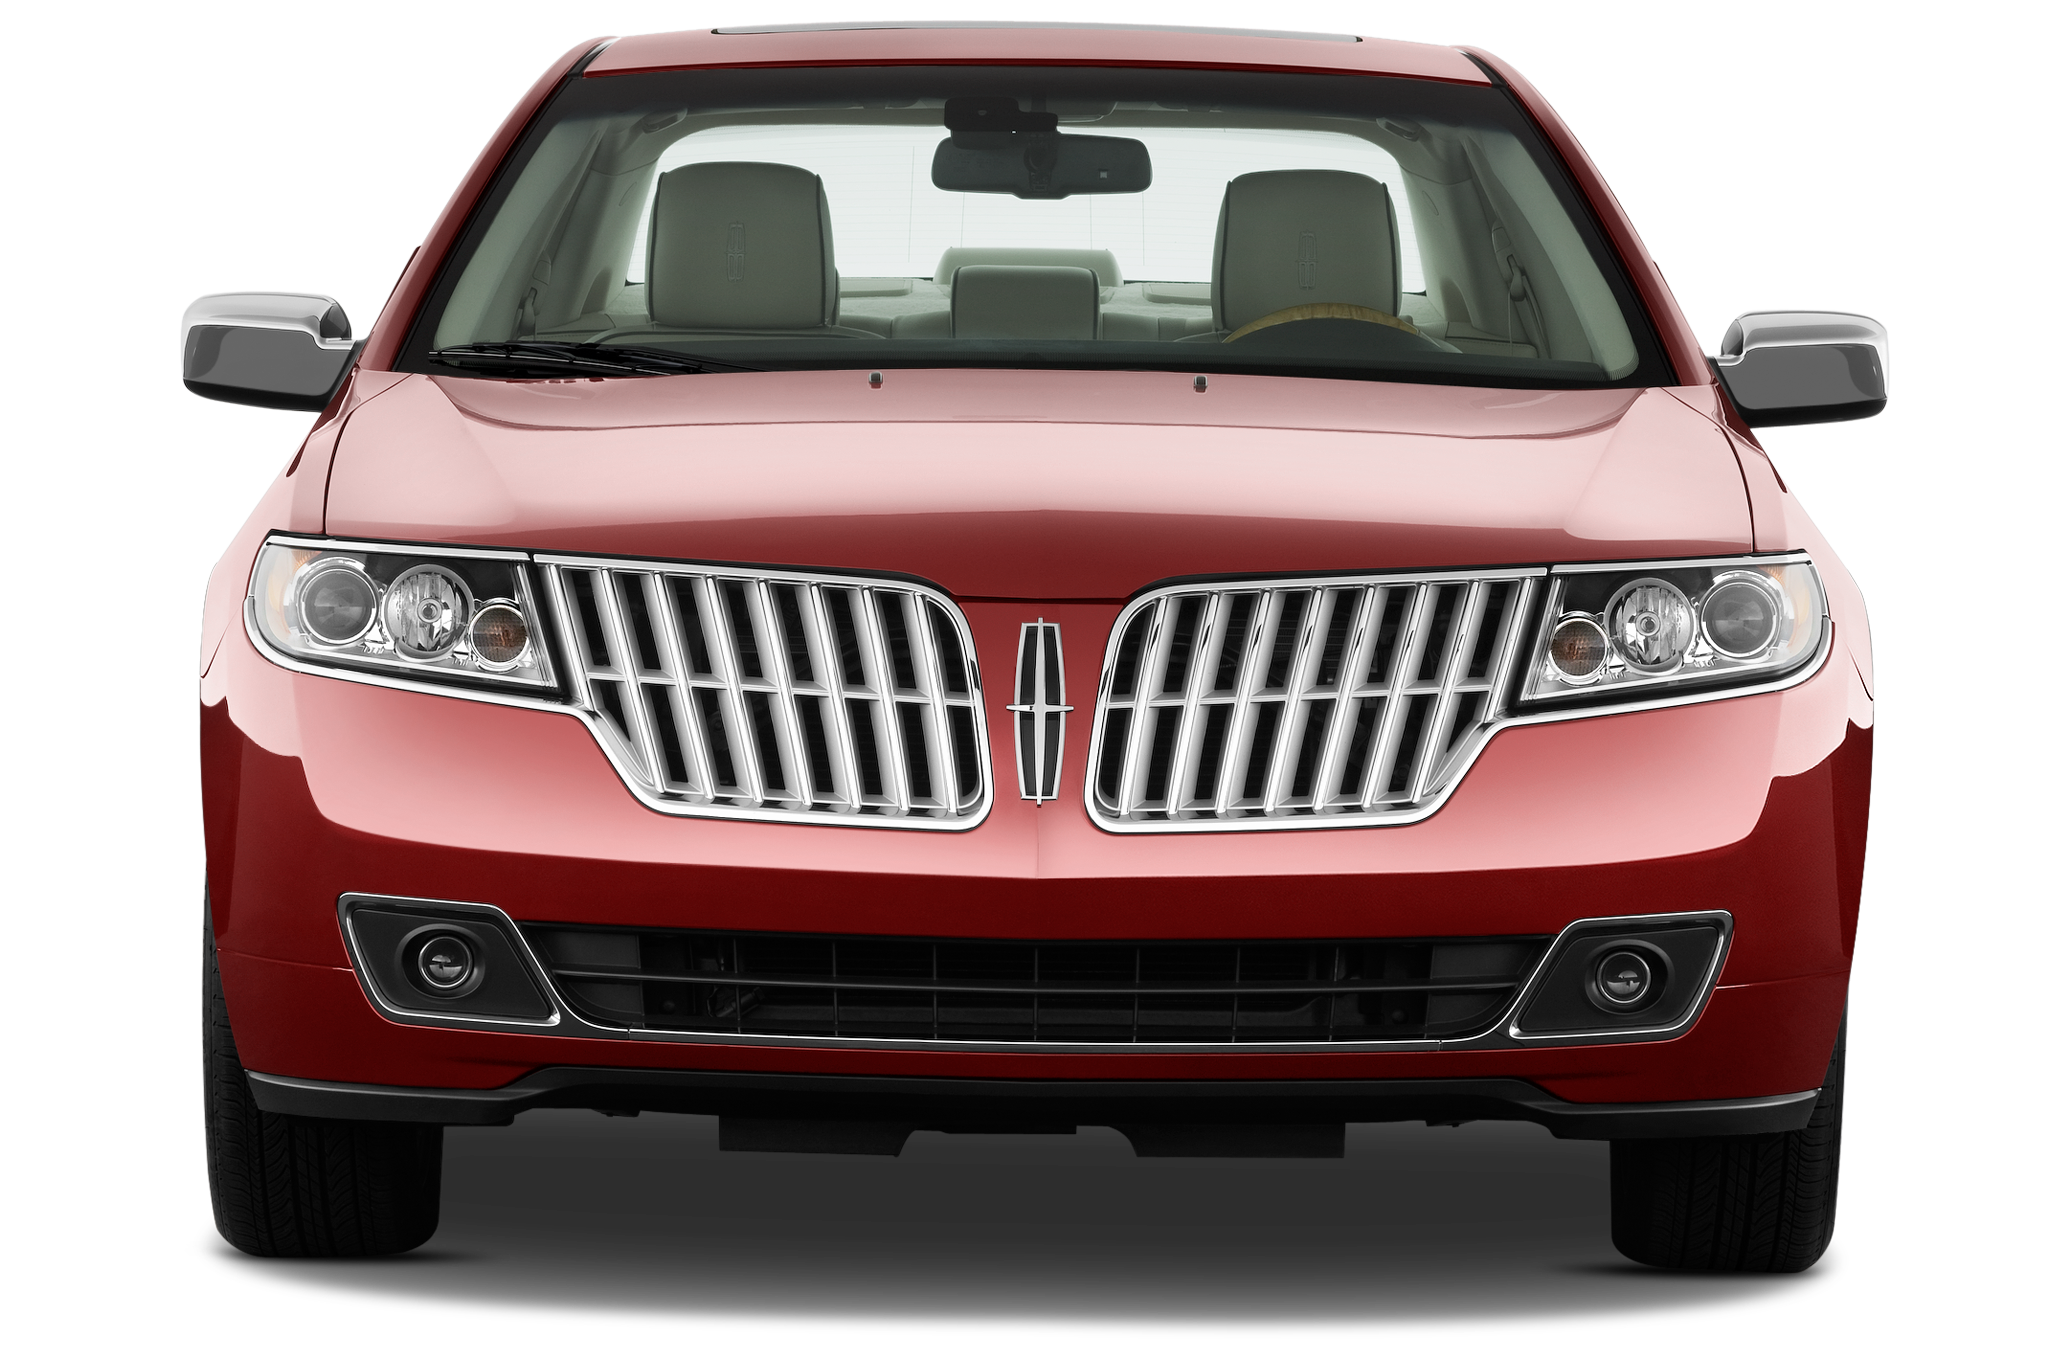 sales mkx lincoln sale motor at in oh lorain lakeview for vehicle